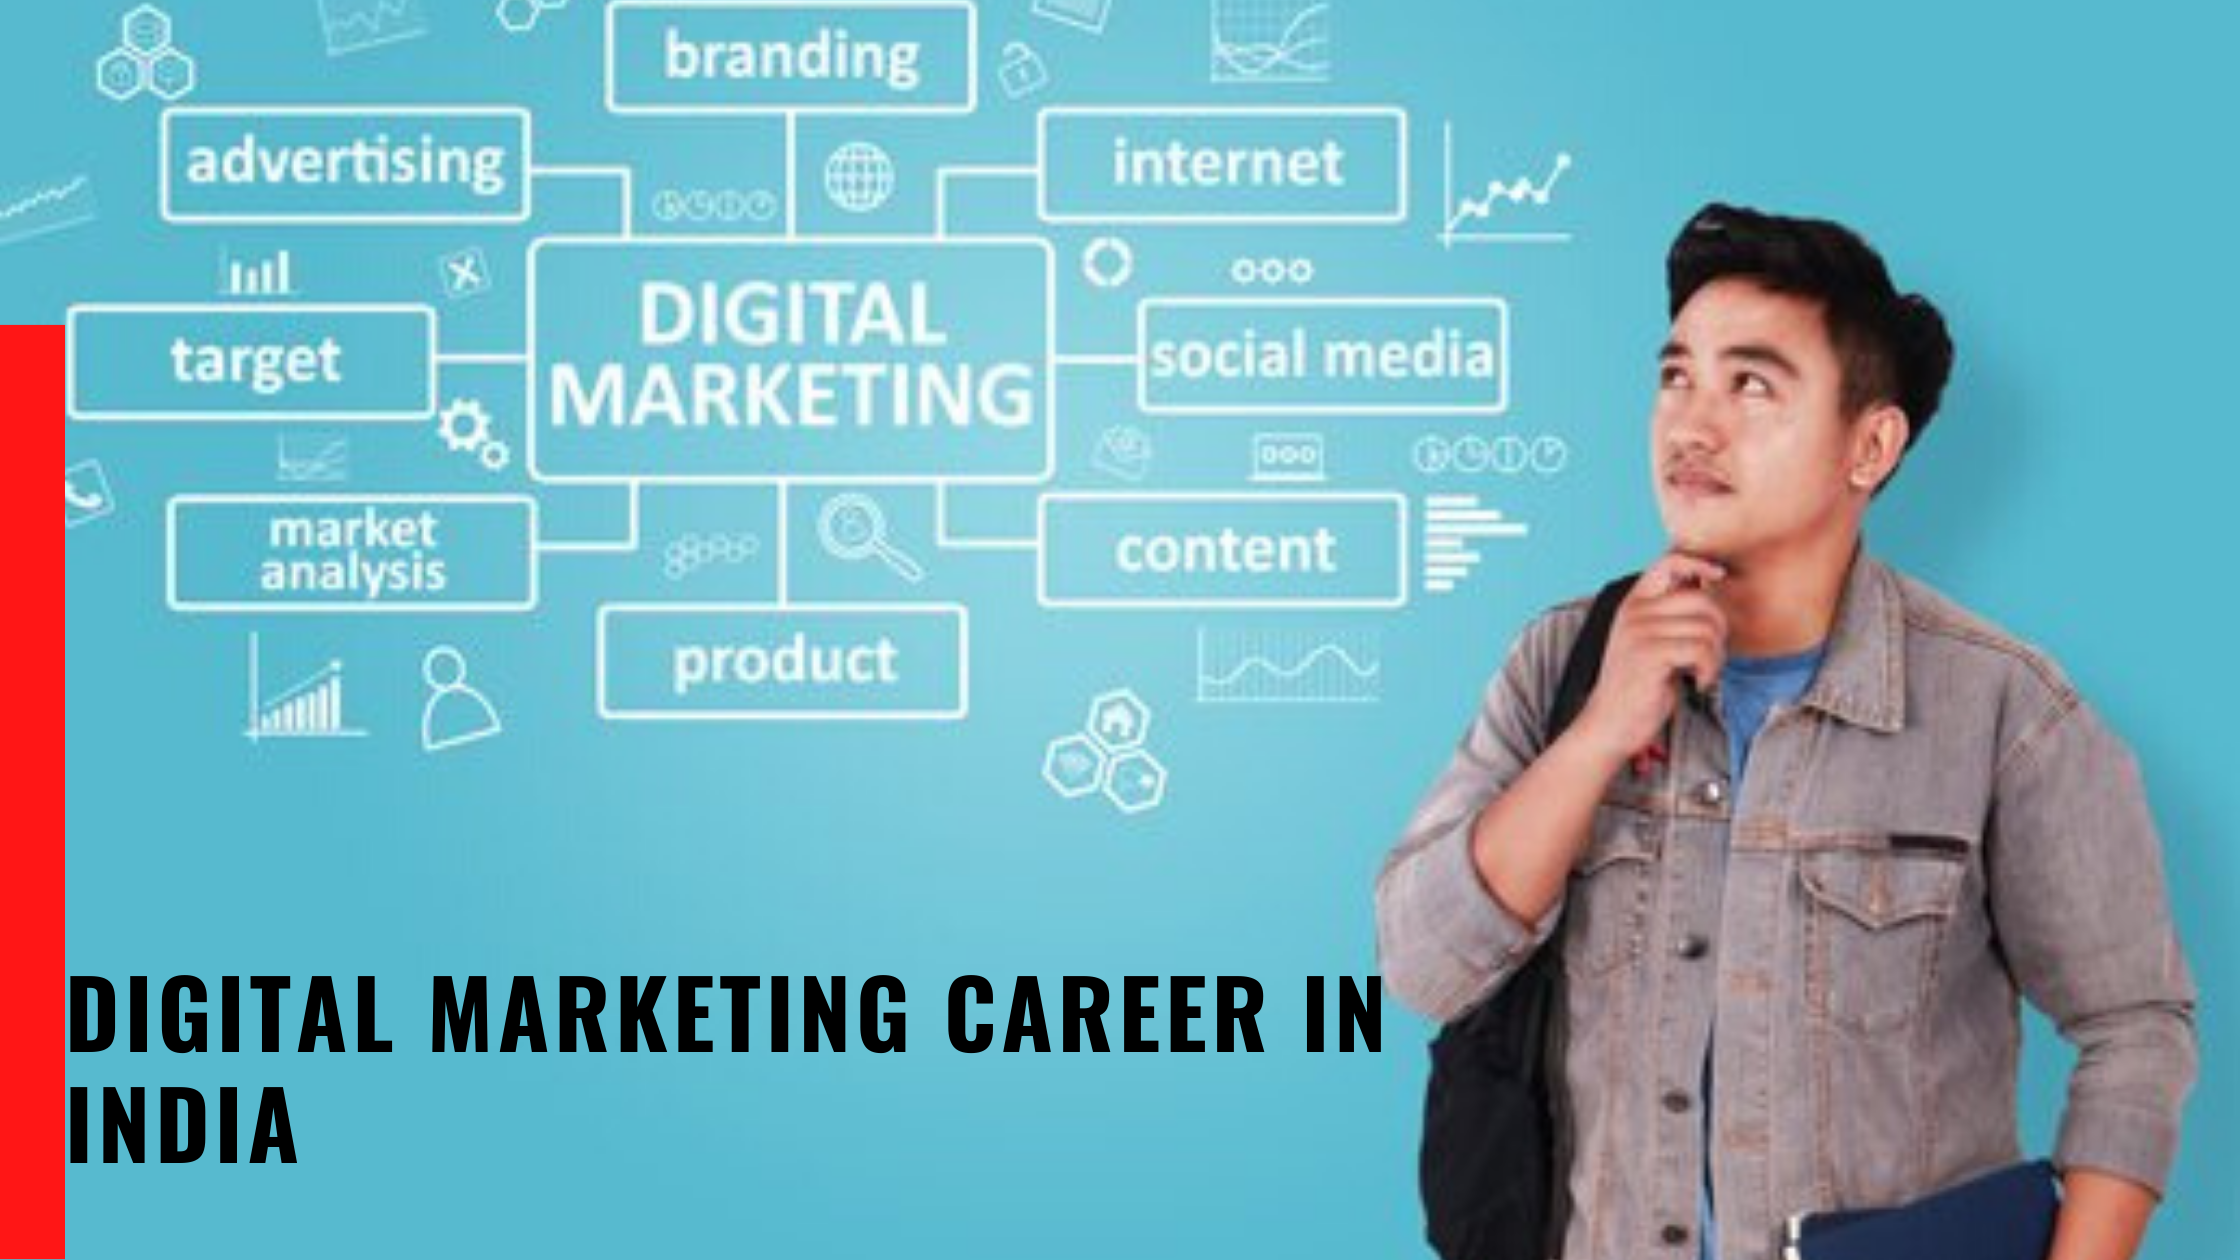 Digital Marketing Career In India